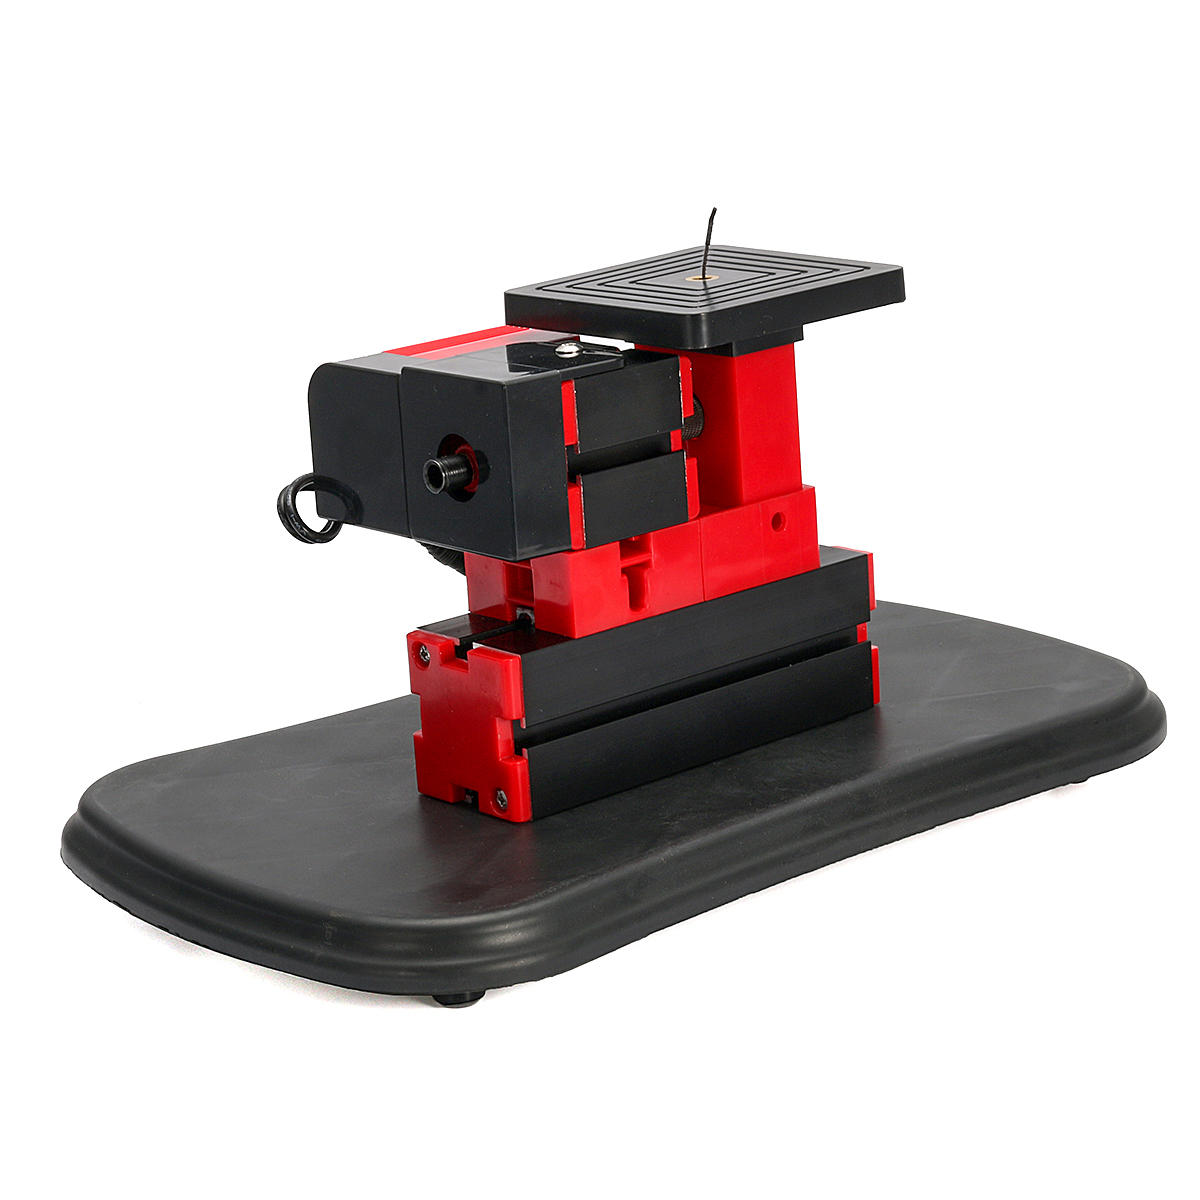 36W DC12V Woodworking Lathe Metal Lathe with Stand Jig-saw Grinder Driller Milling Machine